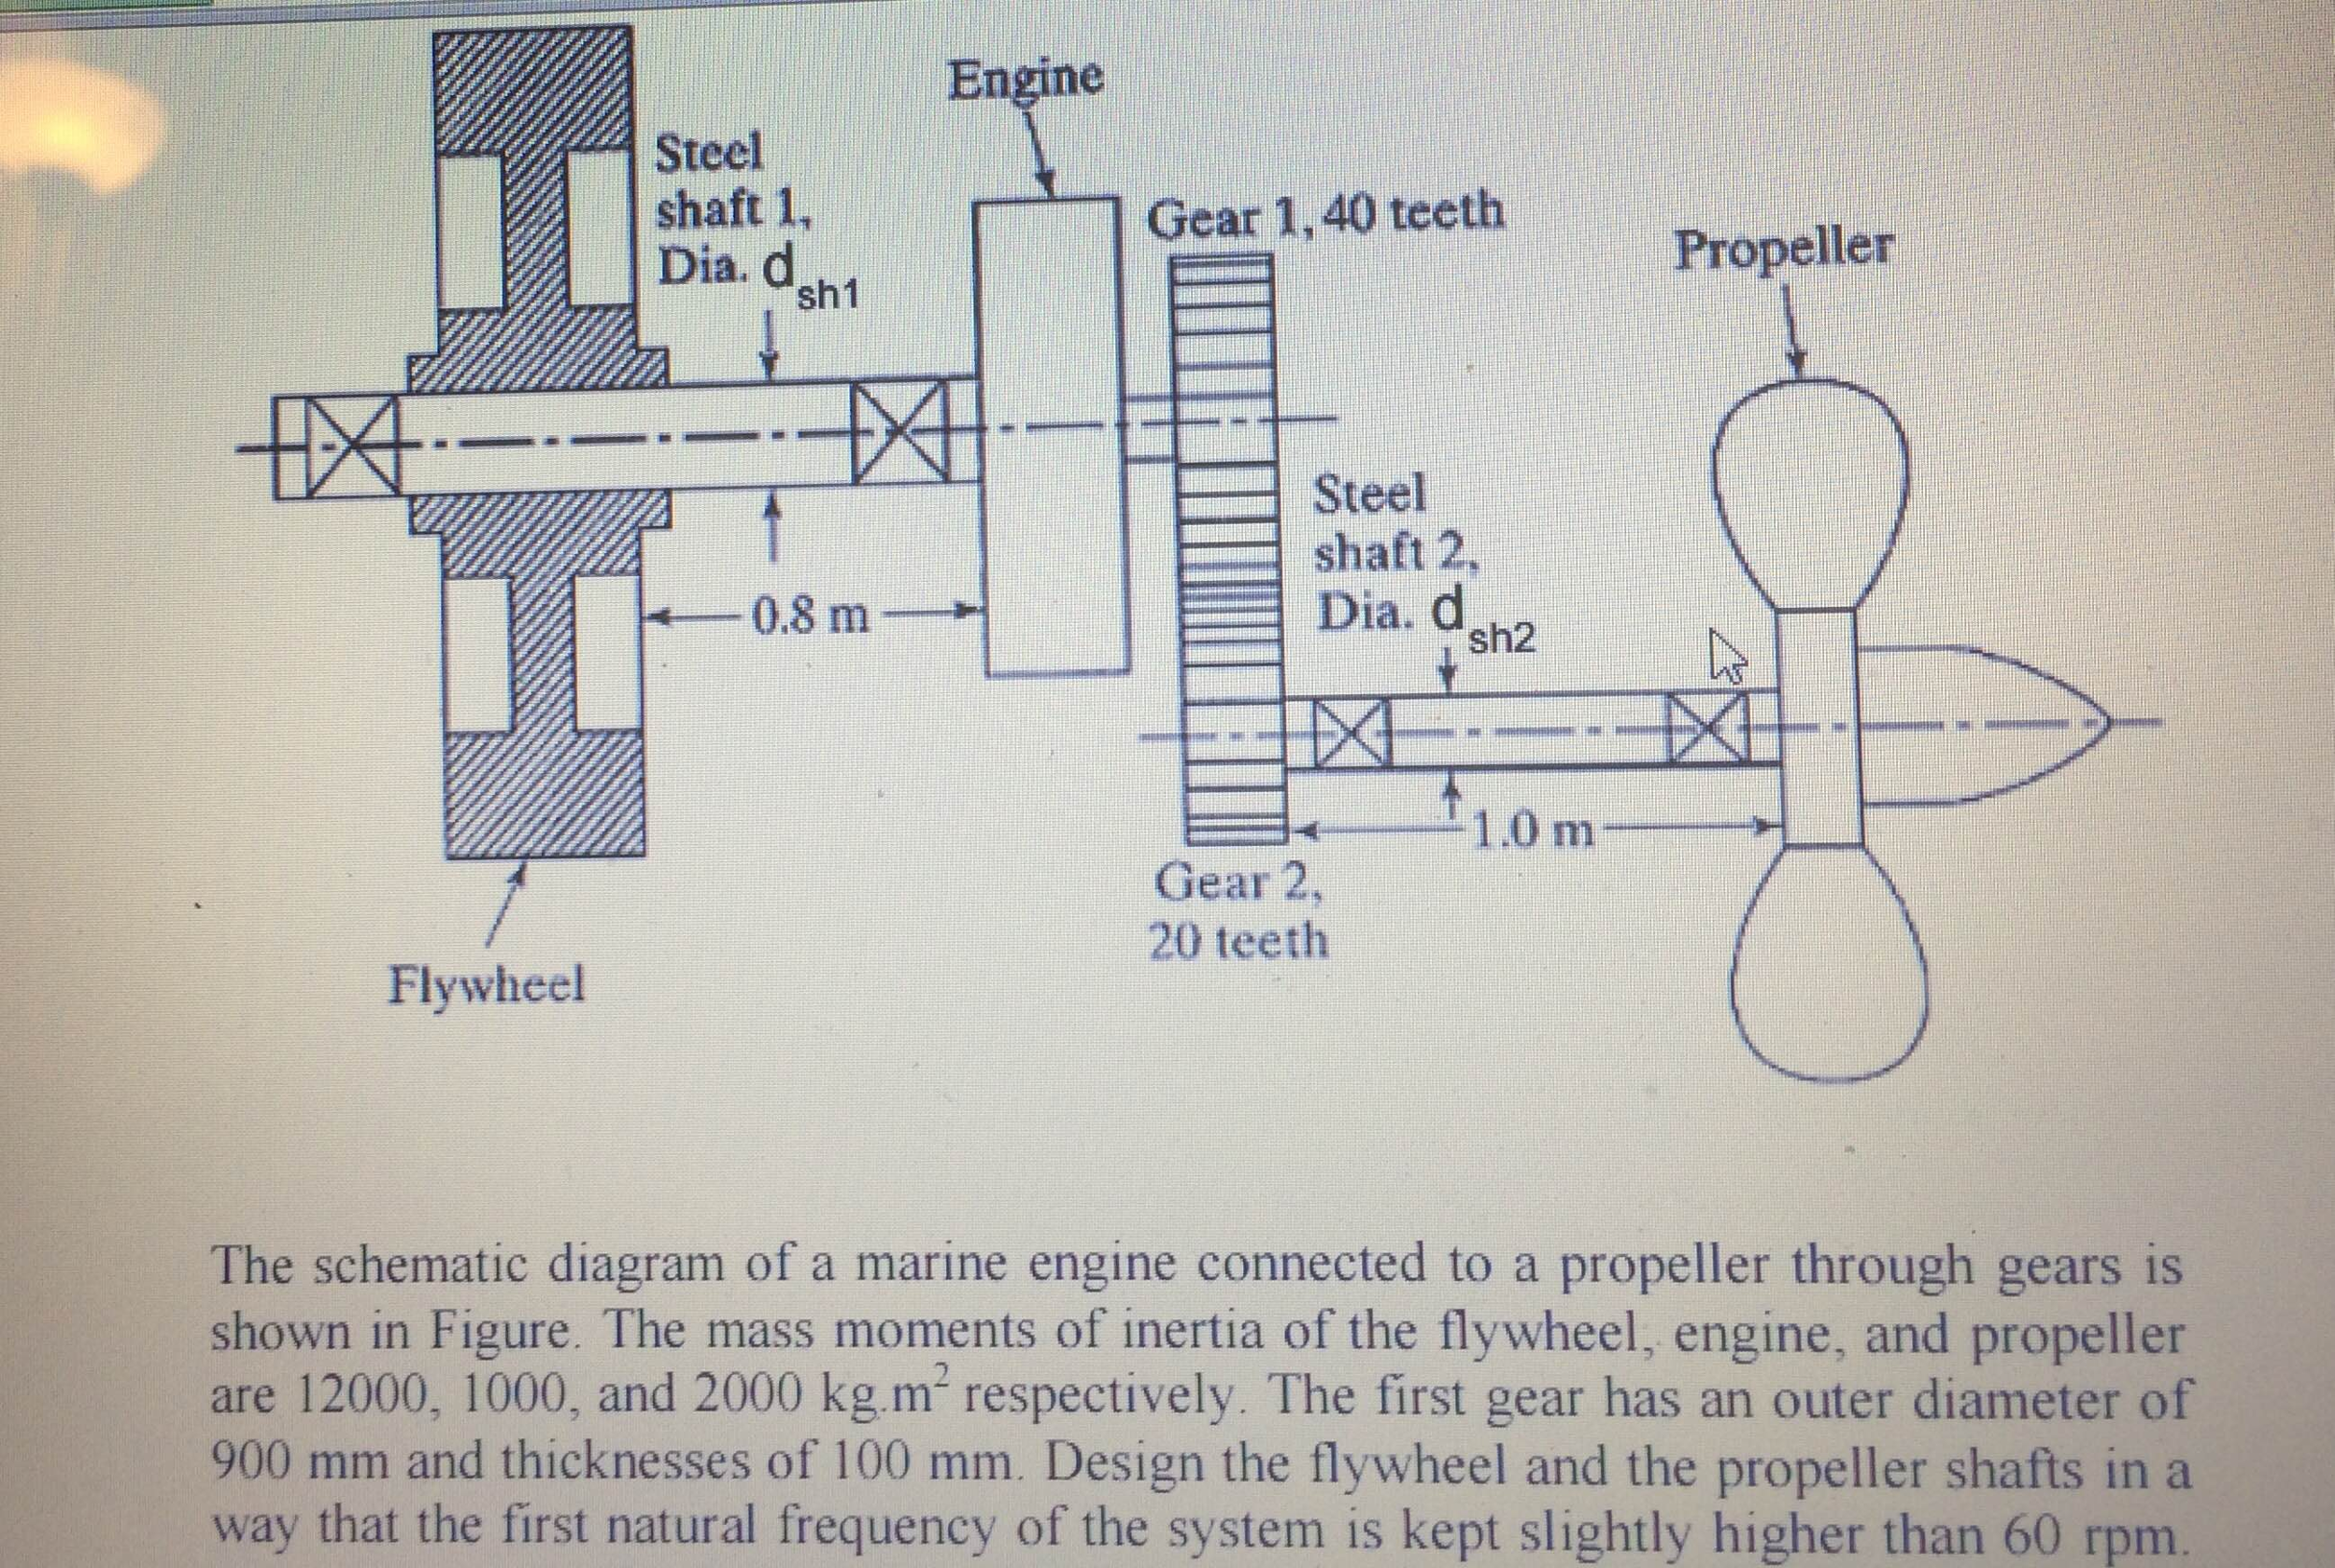 solved the schematic diagram of a marine engine connected Allison Propeller Schematic